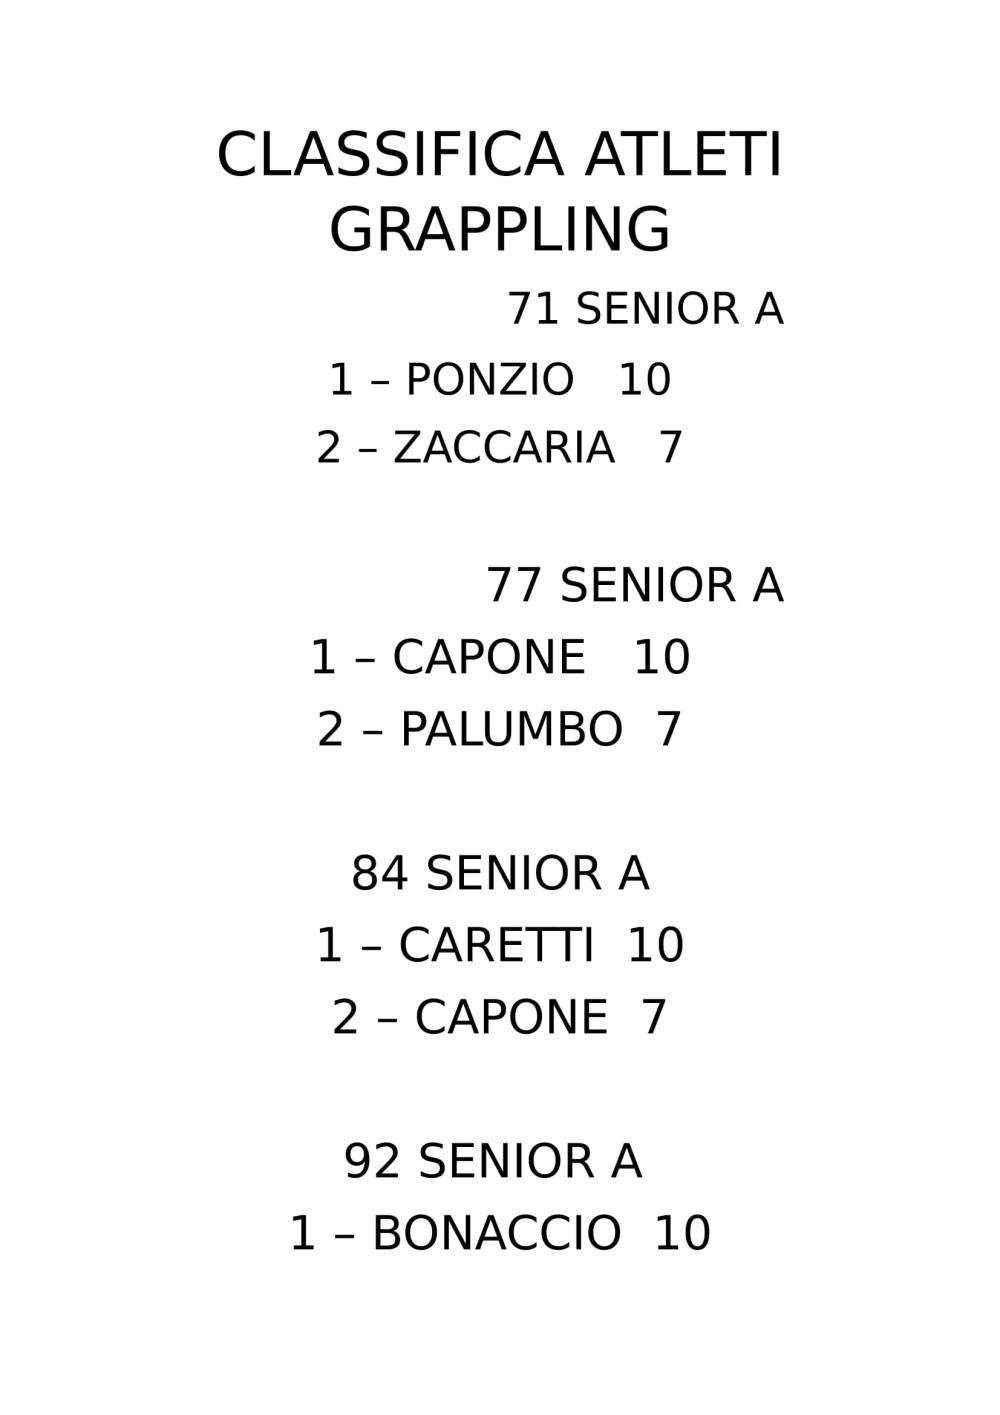 CLASSIFICA ATLETI GRAPPLING A BTF 2-1